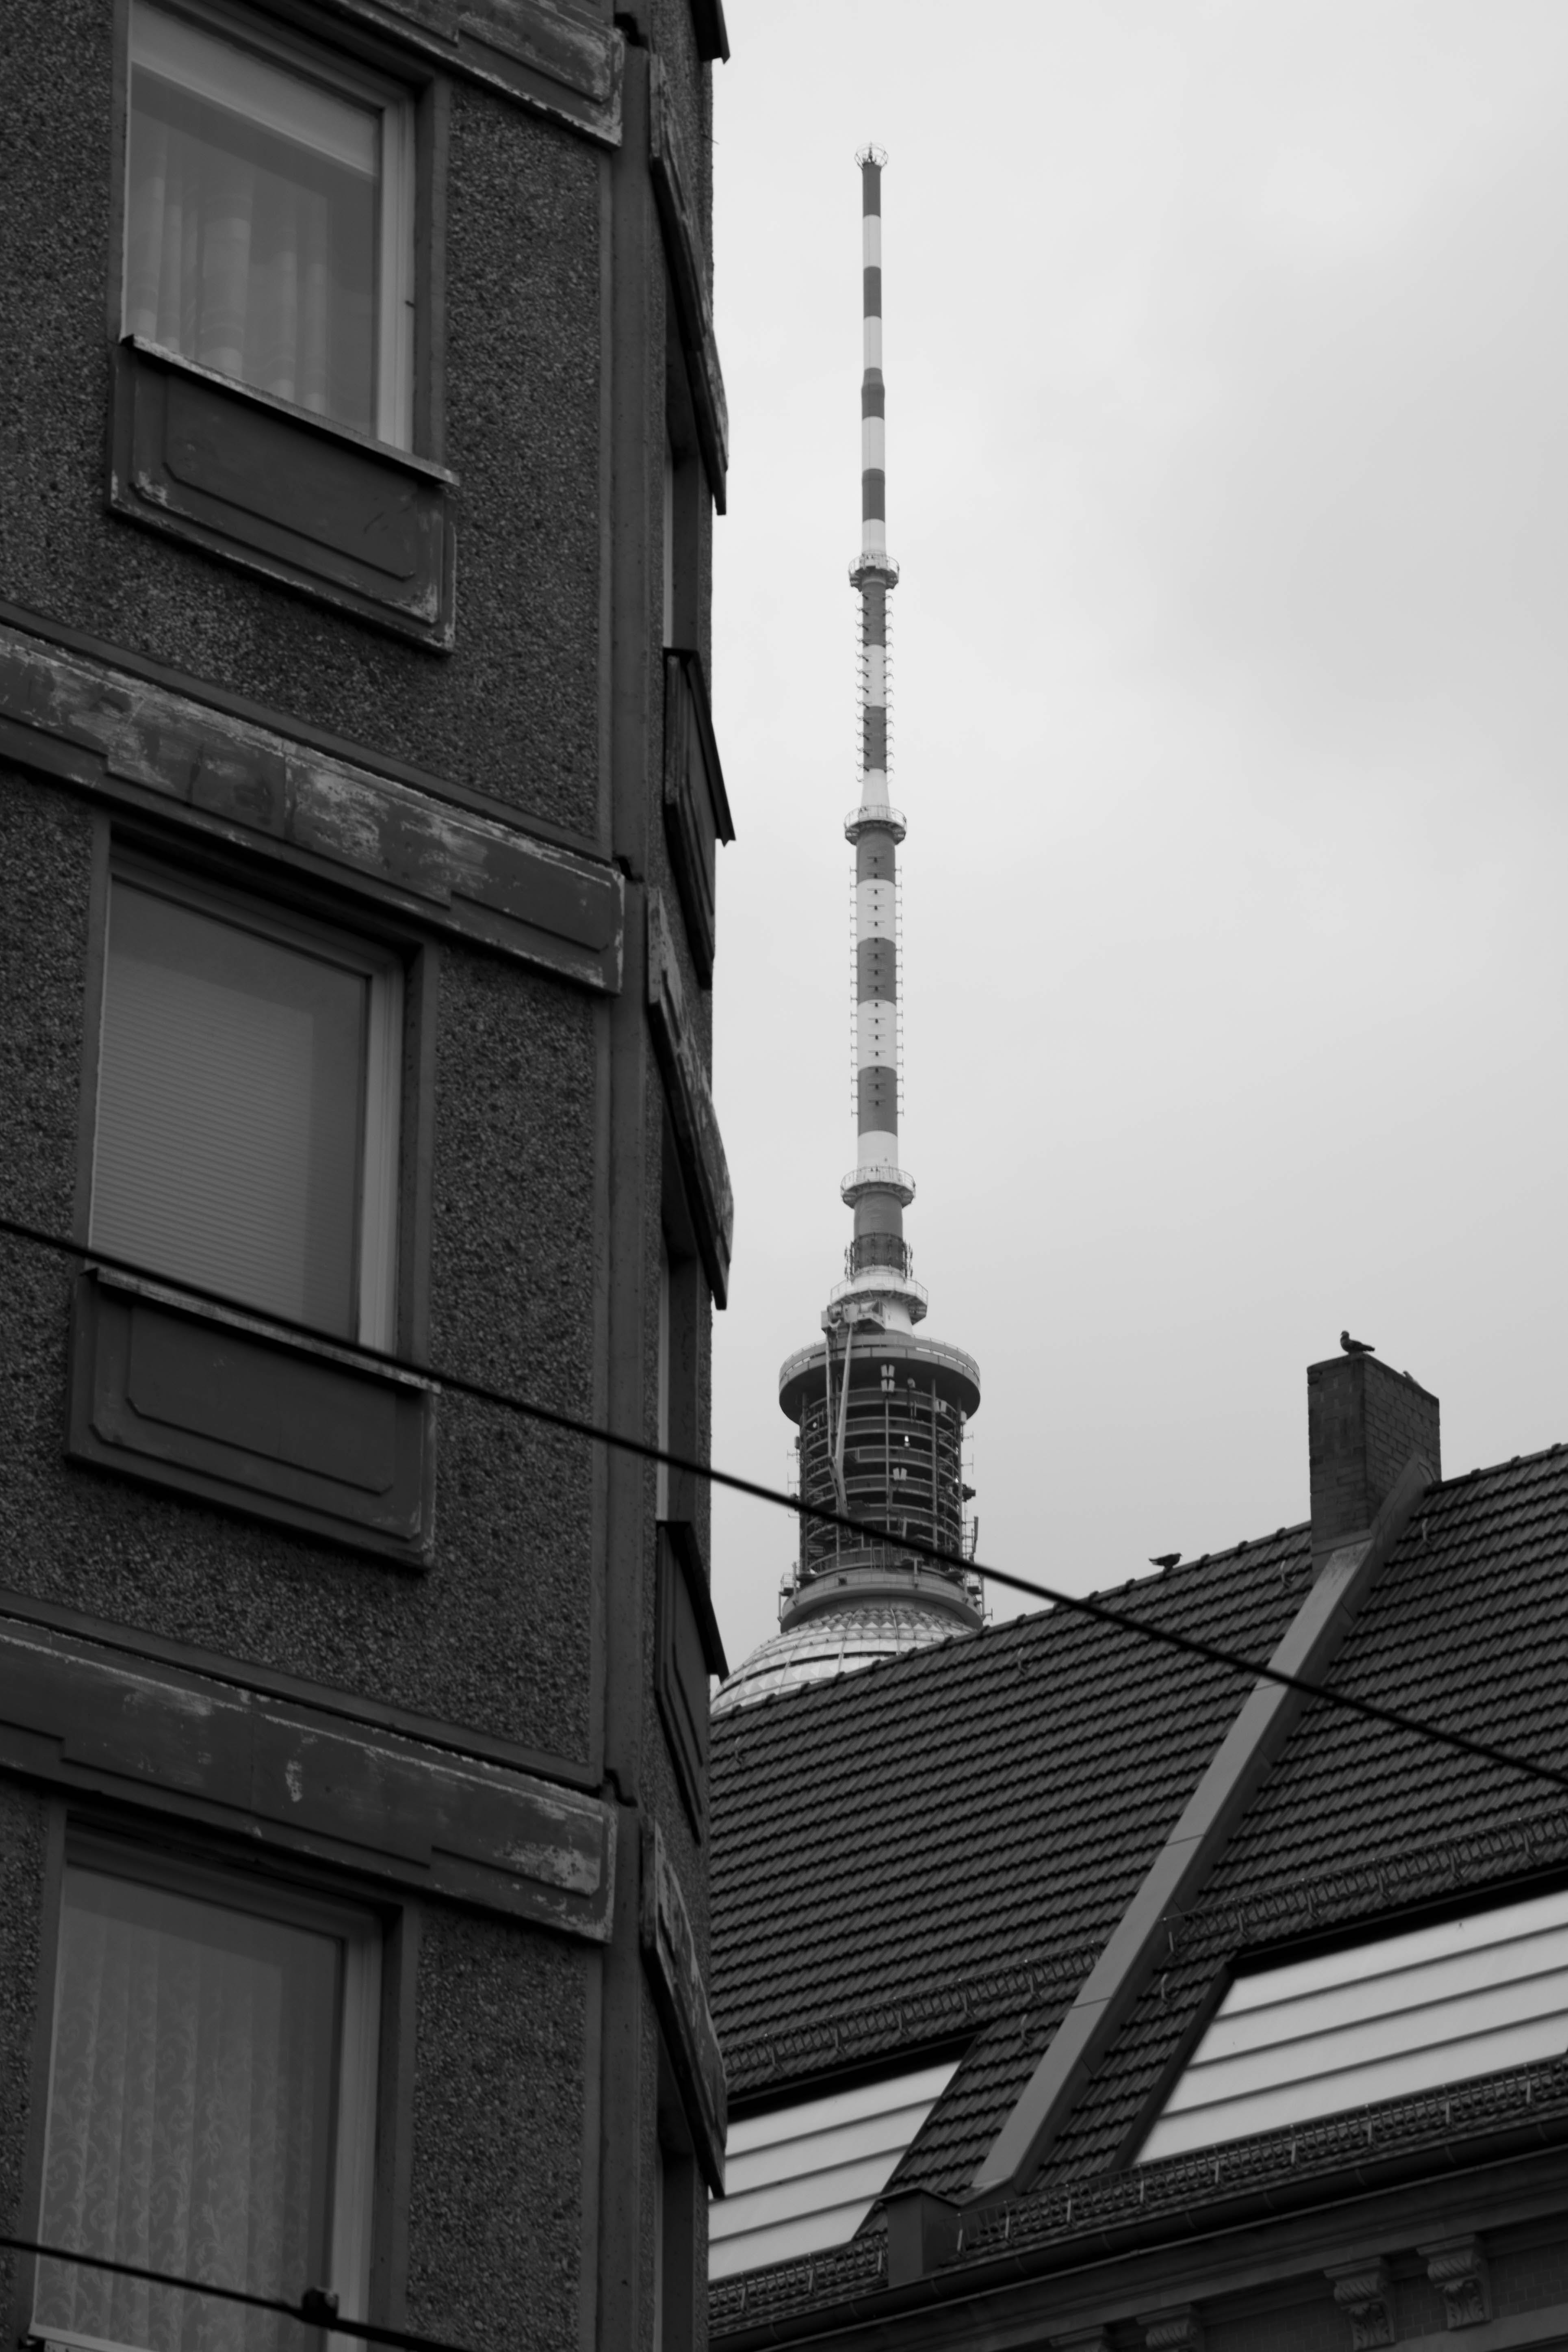 Free stock photo of architecture, berlin, black and white, Fernsehturm